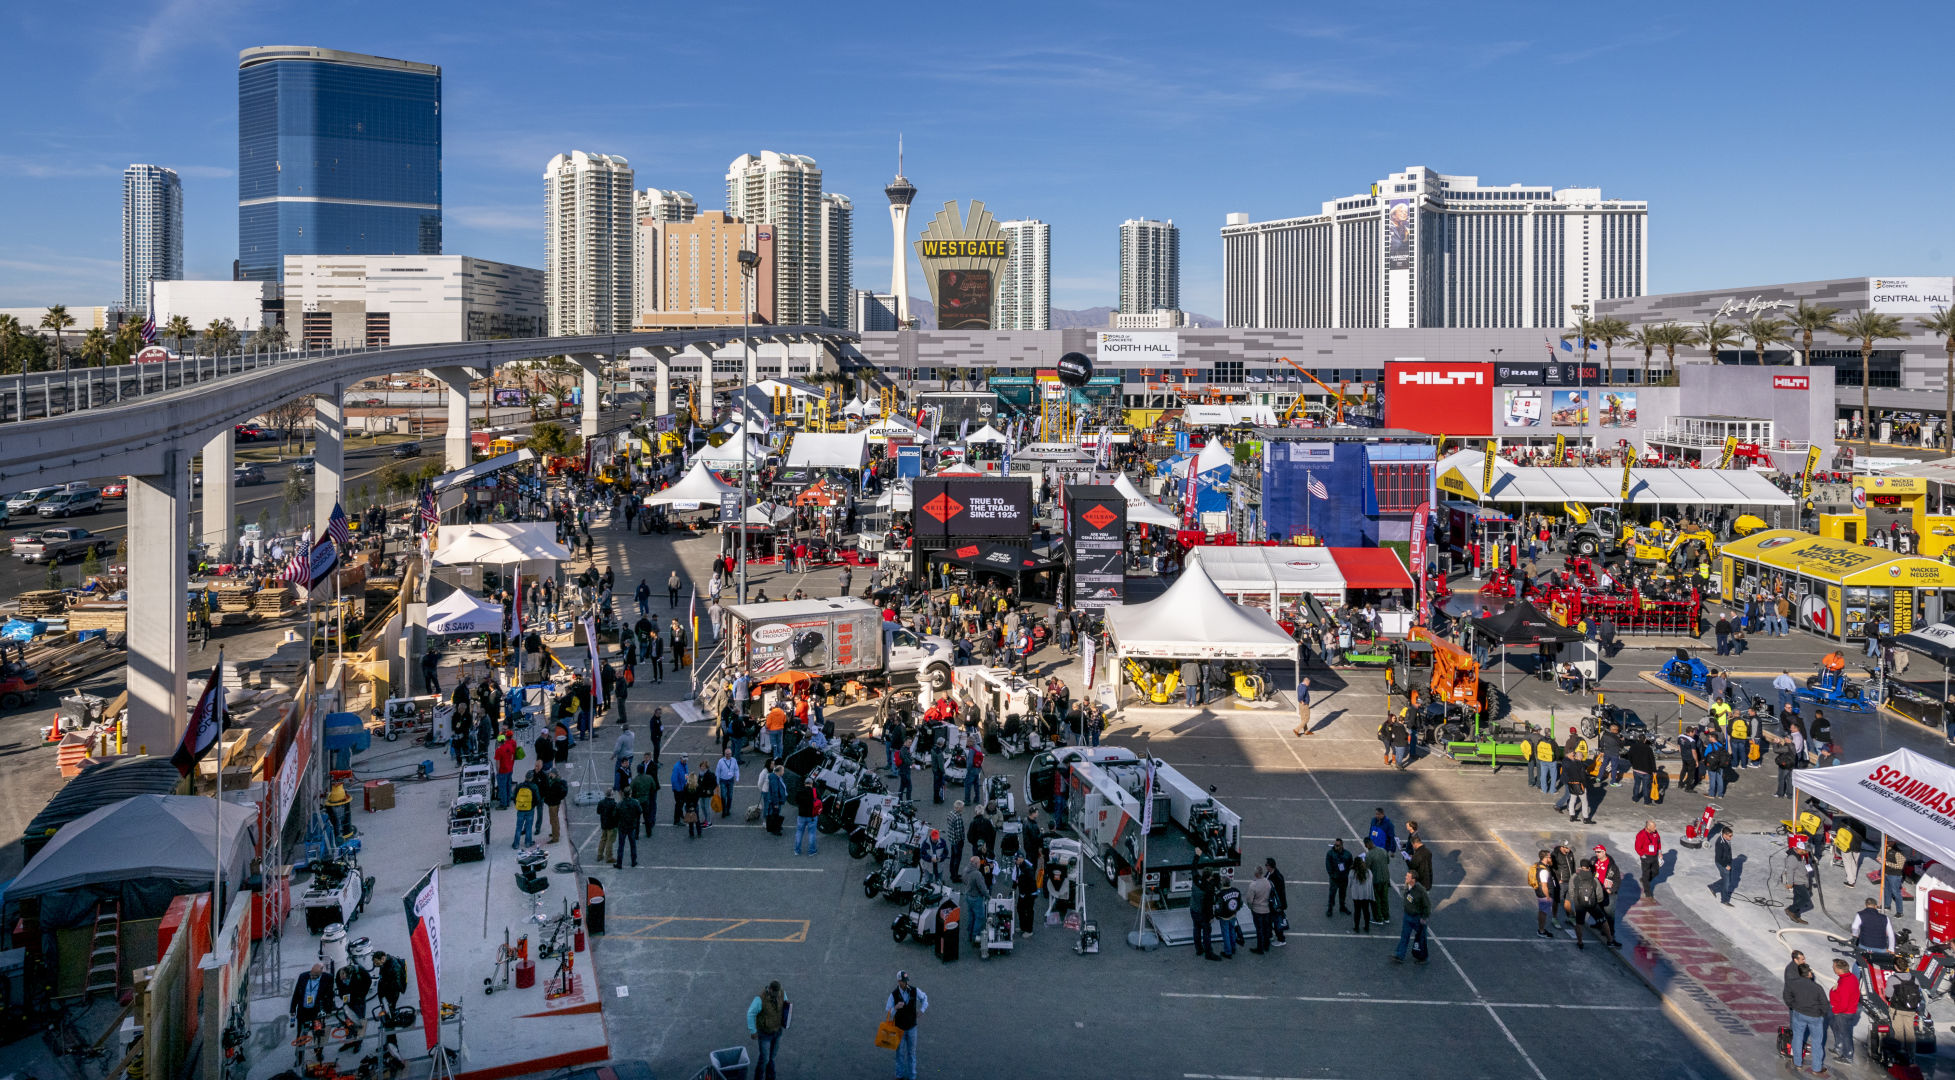 he World of Concrete trade show fills the Silver Parking Lot at the Las Vegas Convention Center on Tuesday, Jan. 22, 2019. (Mark Damon/Las Vegas News Bureau)